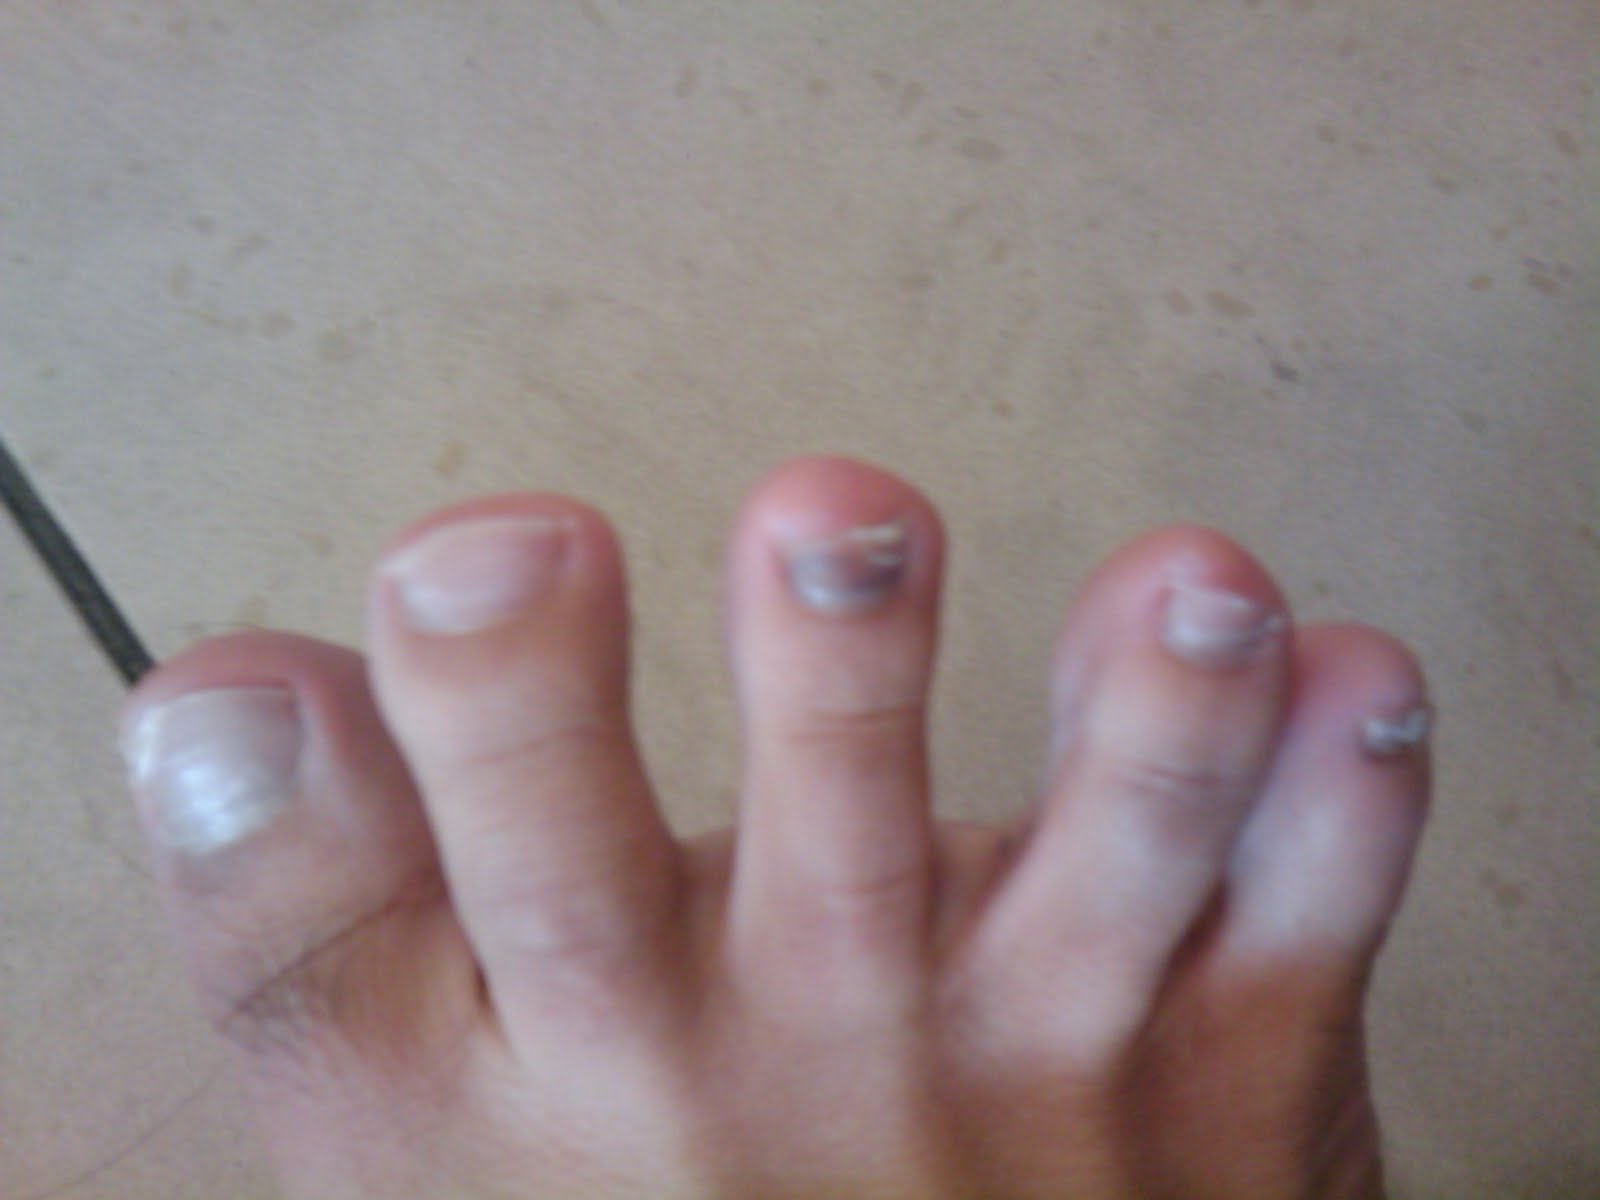 Unhealthy Nails On the unhealthy nailsUnhealthy Toenails